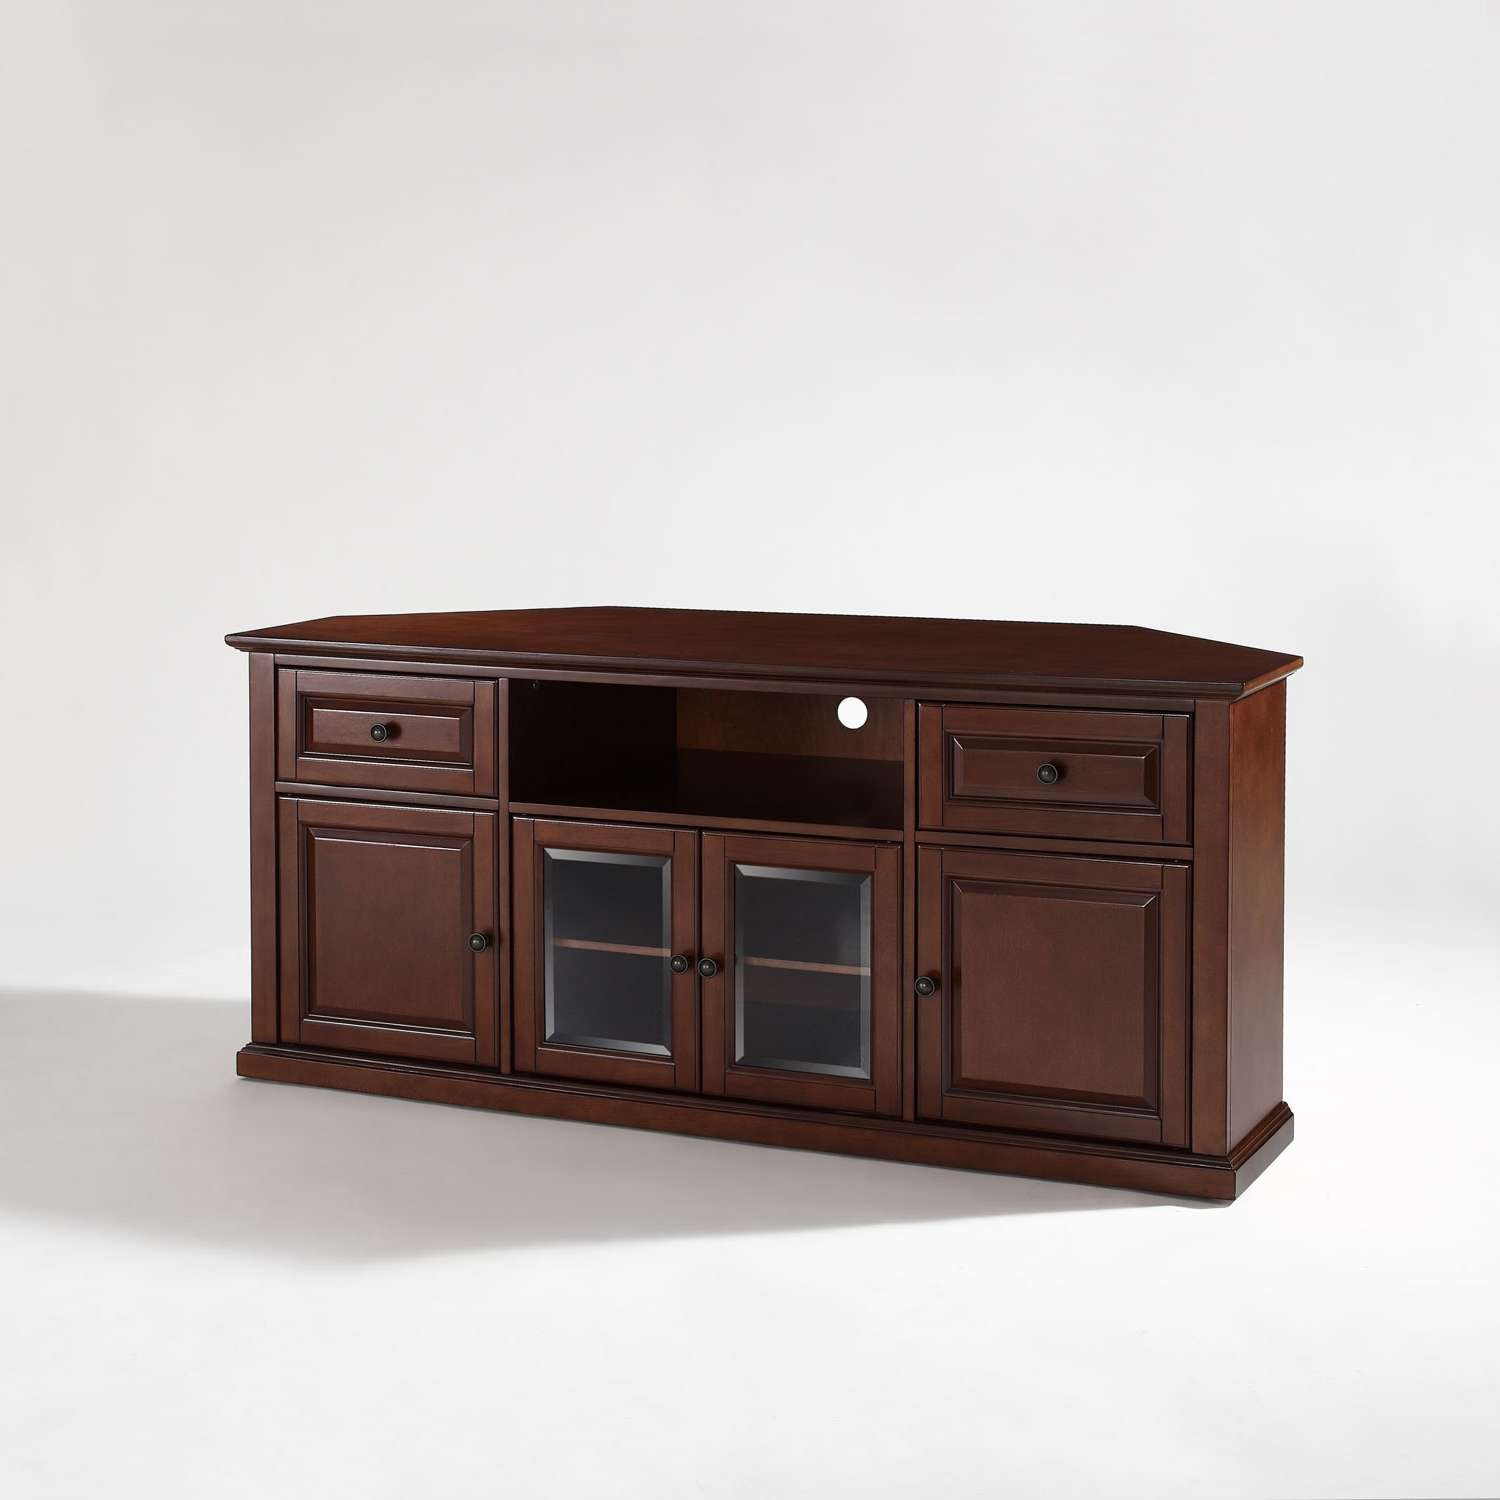 60 Inch Corner Tv Stand In Vintage Mahogany Crosley Furniture Pertaining To Corner Wooden Tv Cabinets (Gallery 11 of 20)